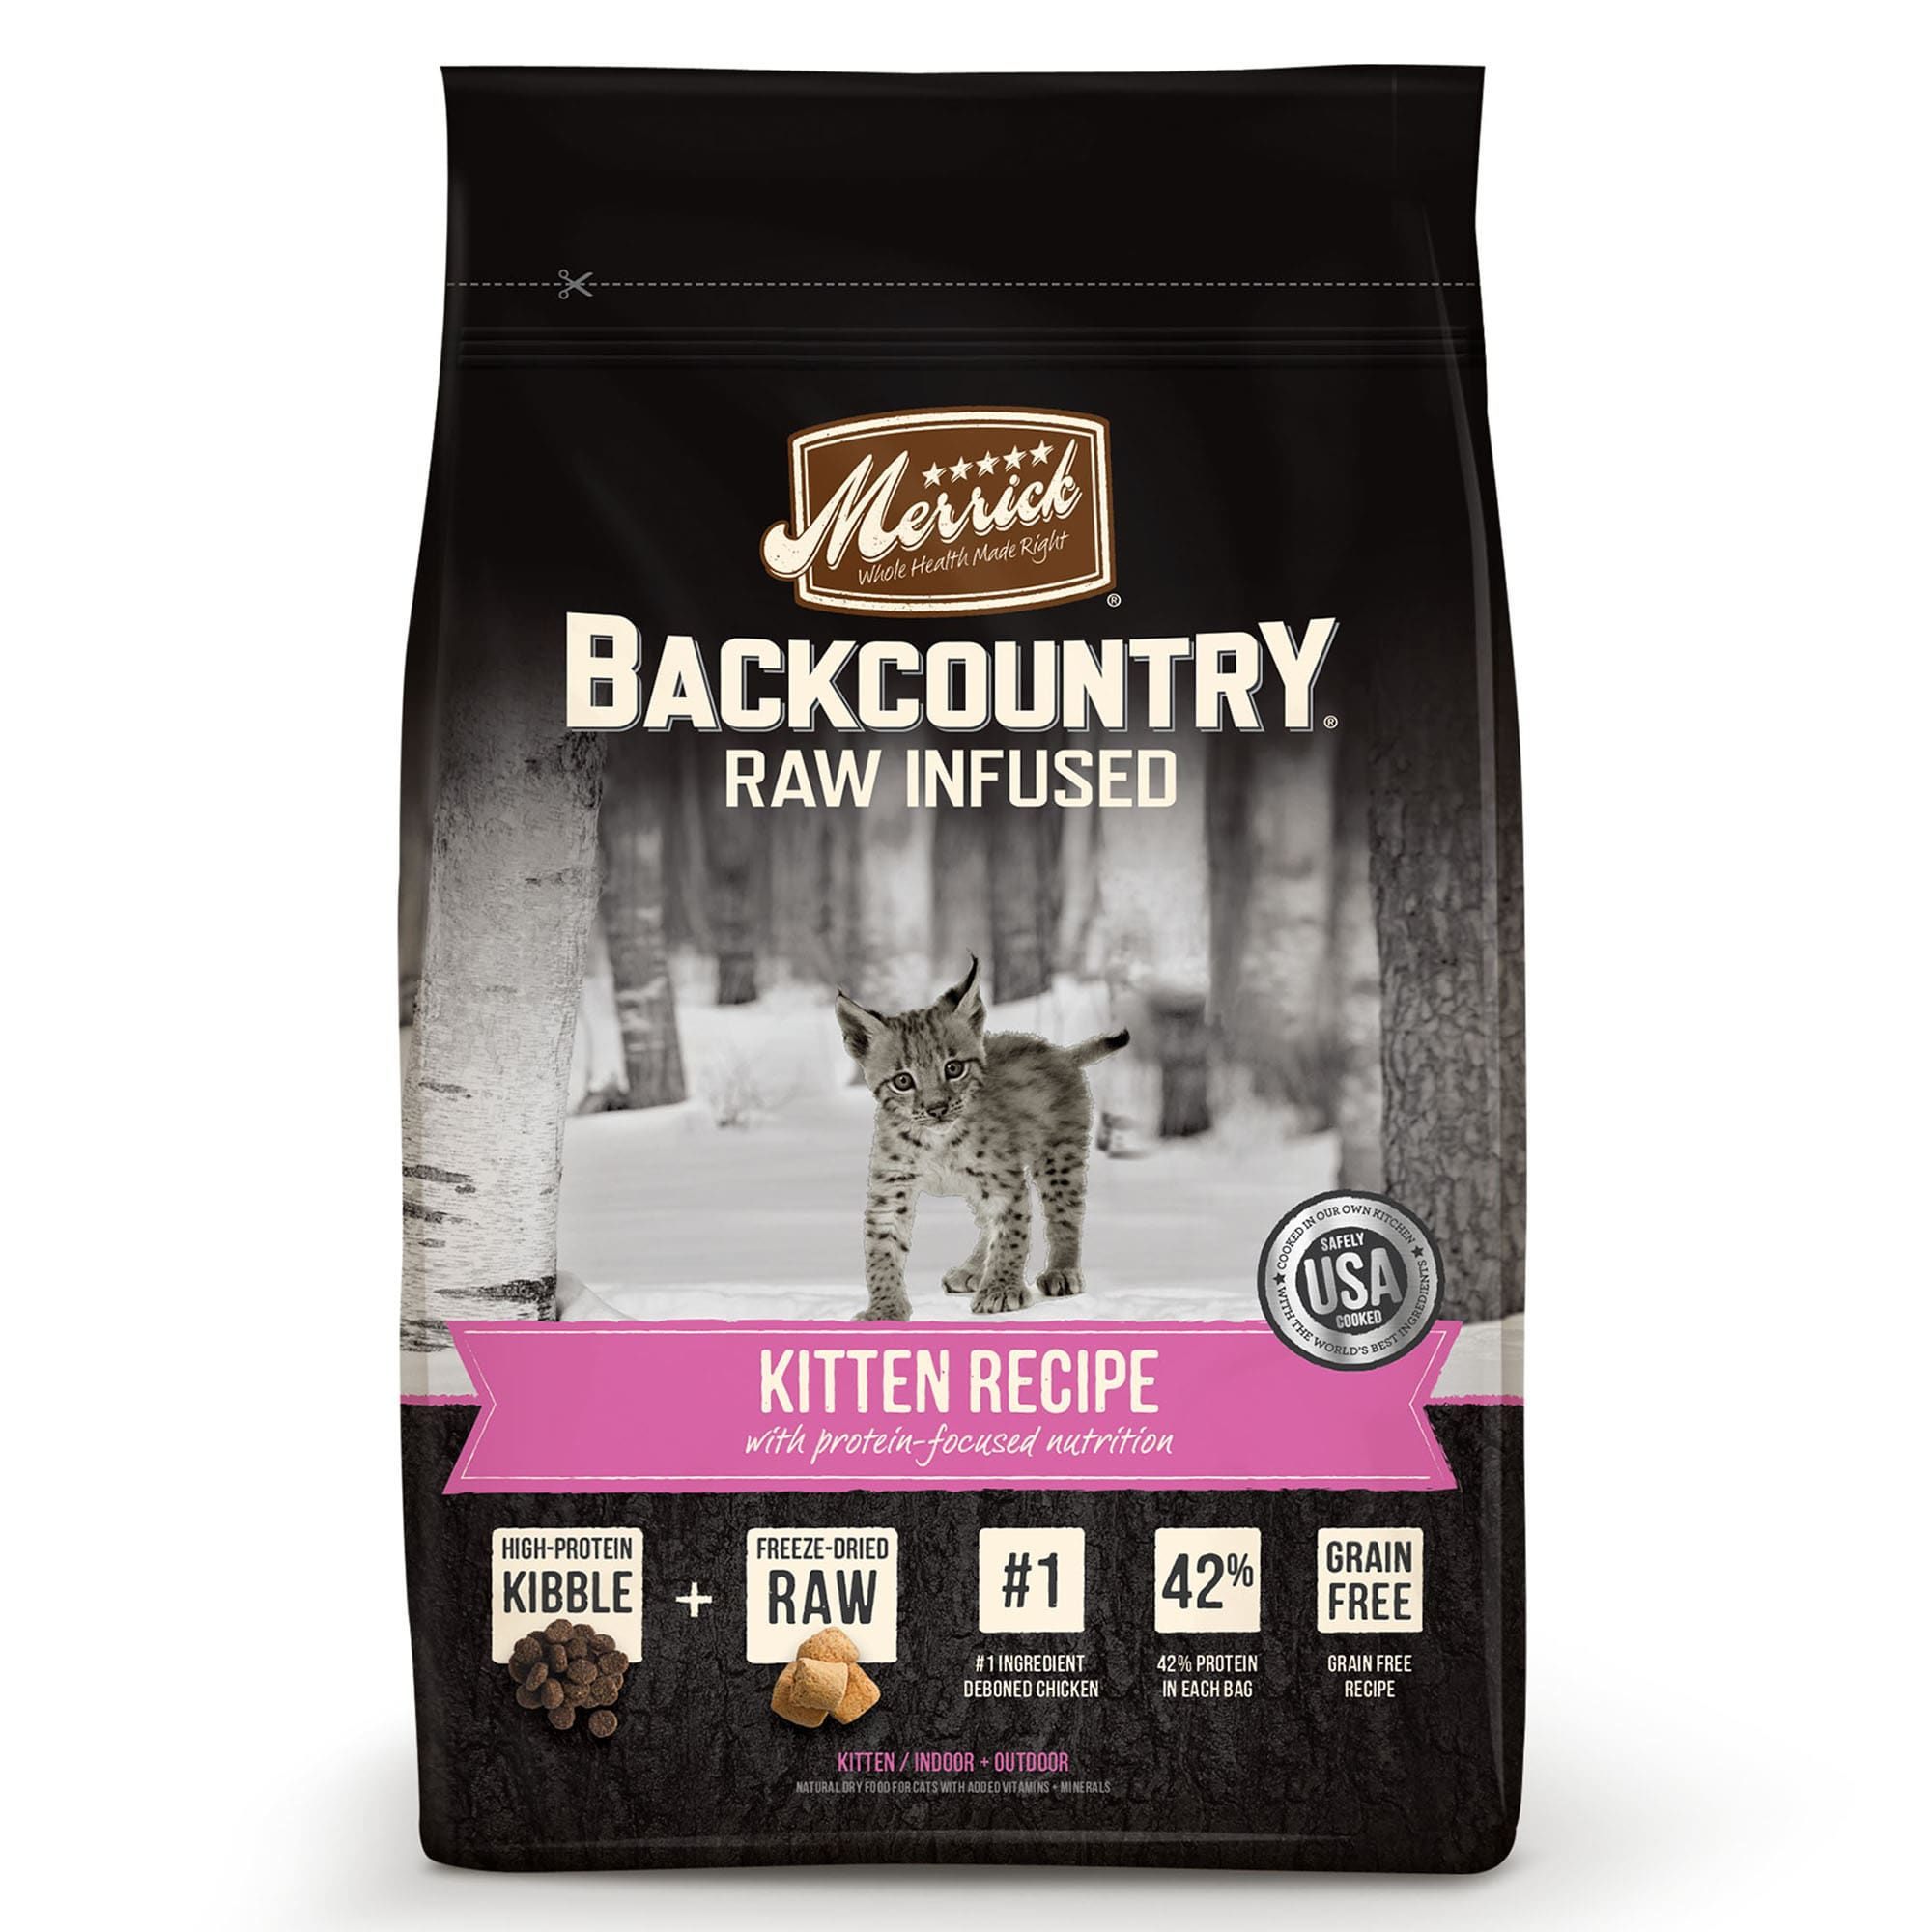 Merrick Backcountry Grain Free Raw Infused Kitten Recipe Dry Cat Food 3 Lbs In 2020 Dry Cat Food Grain Free Cat Food